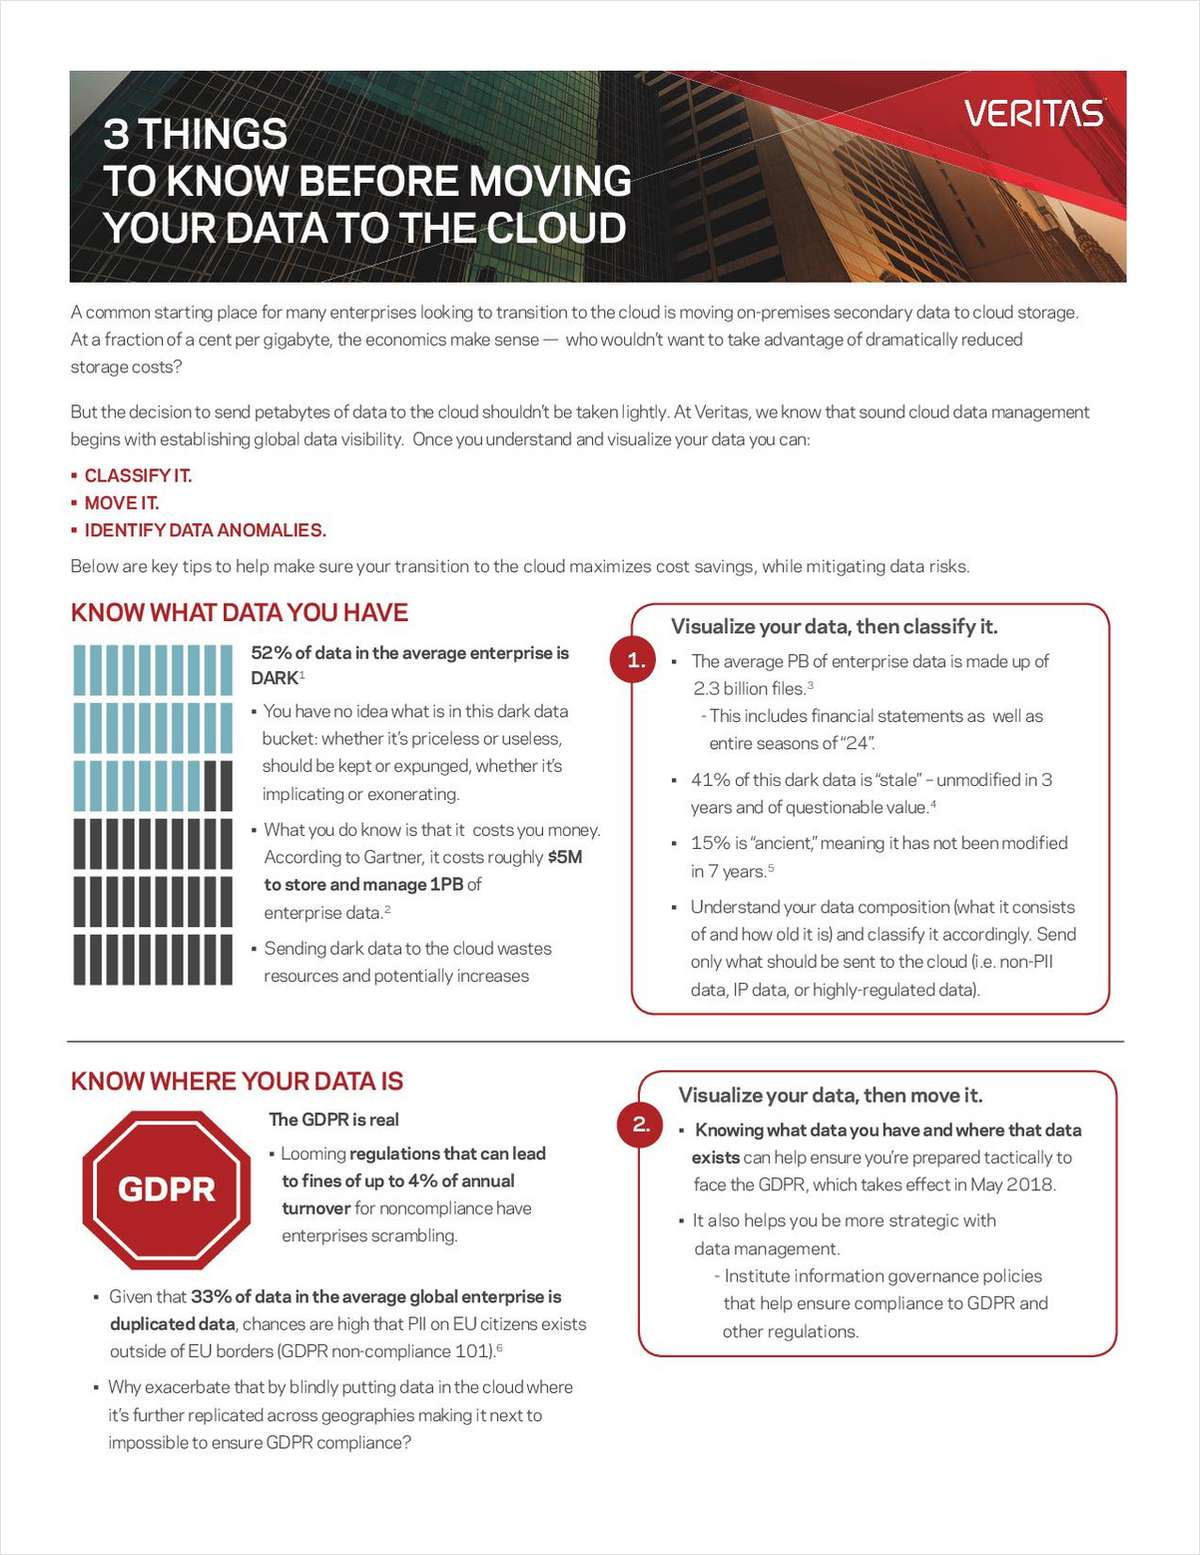 3 Things To Know Before Moving Your Data To The Cloud